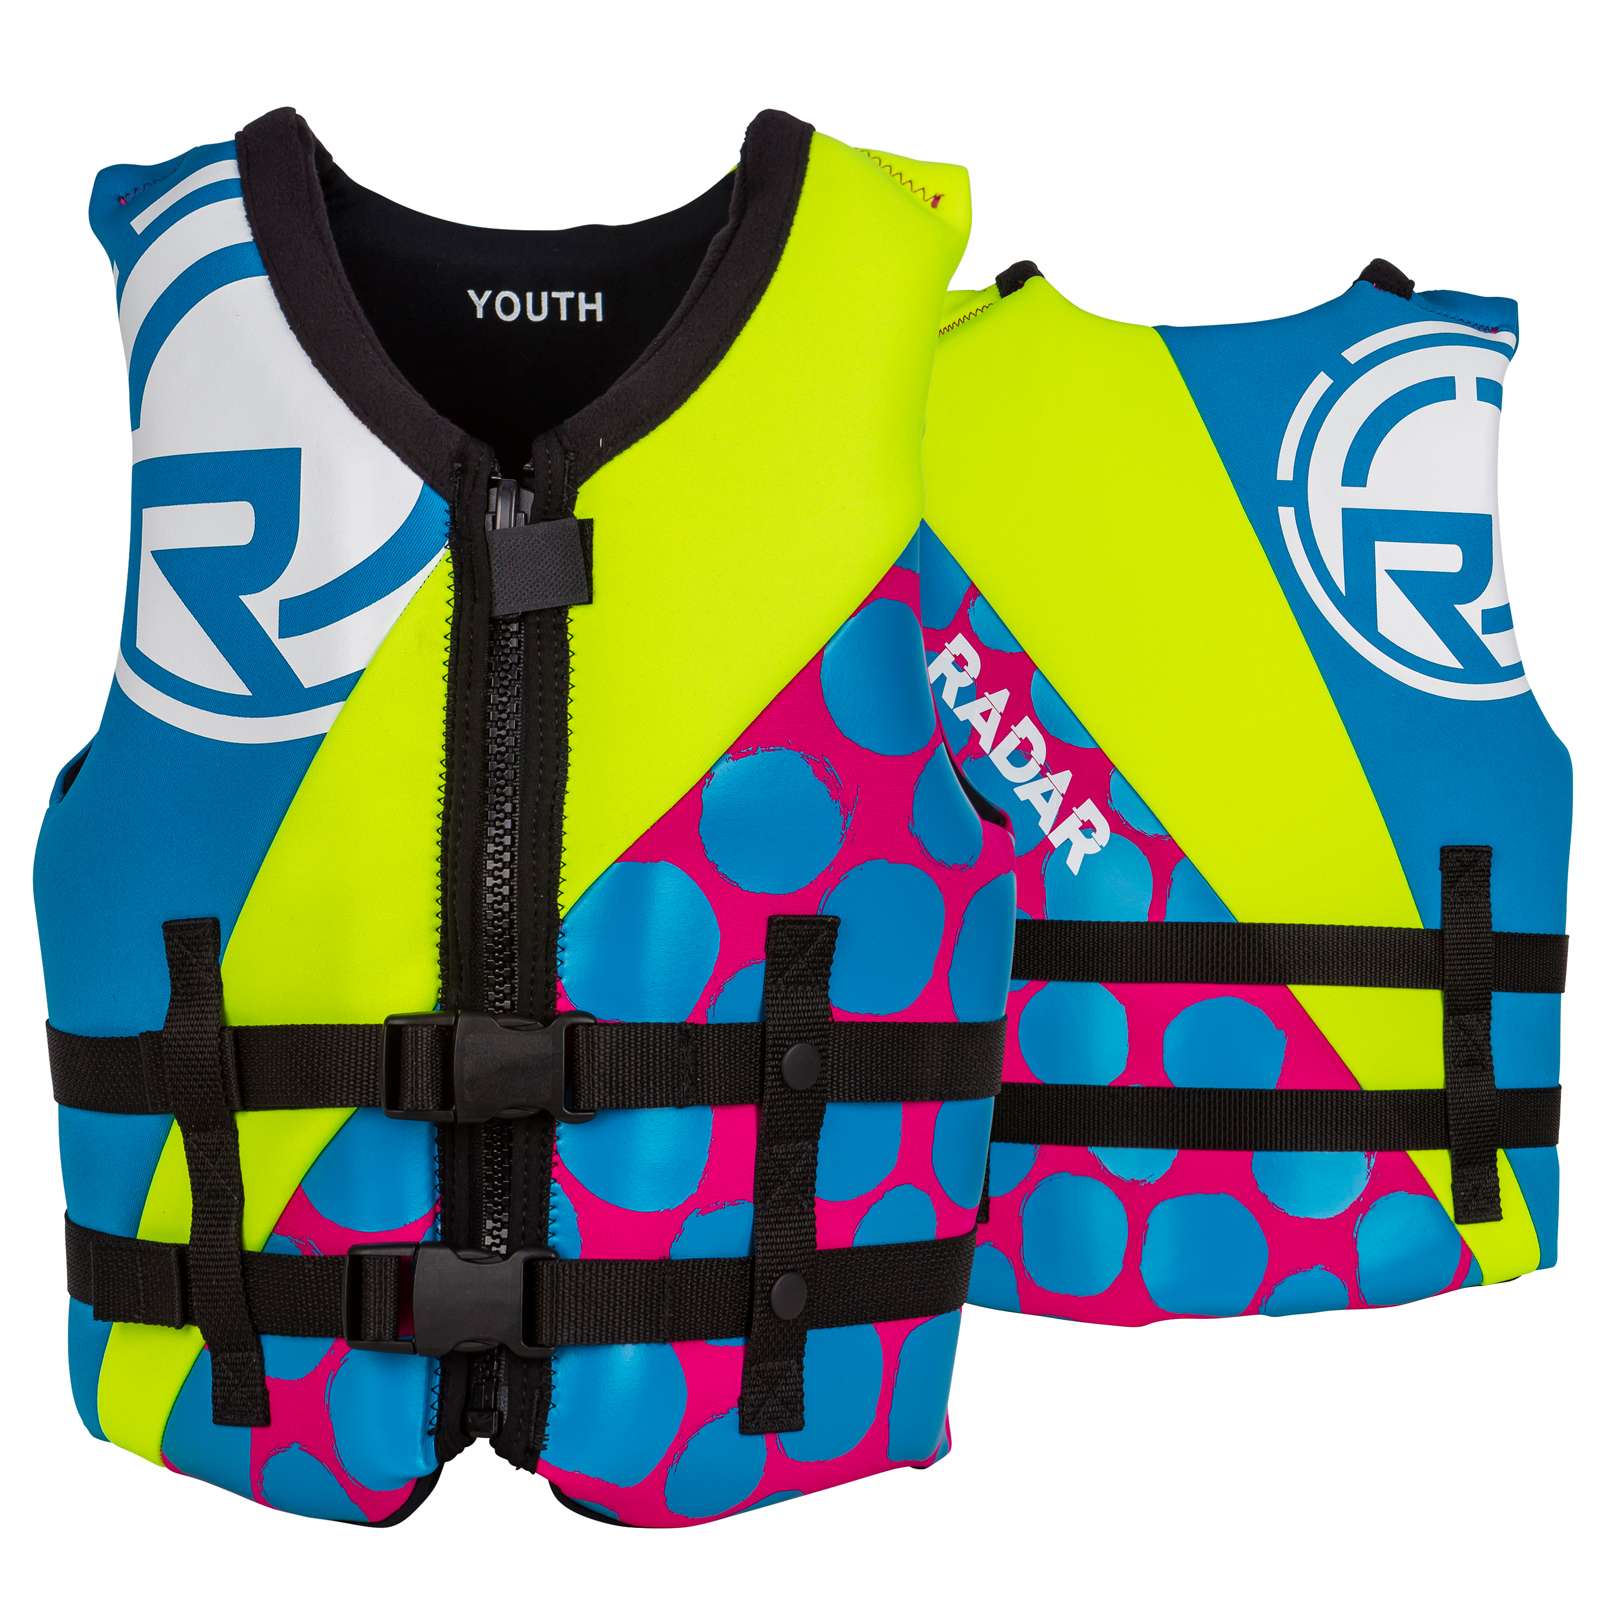 TRA GIRL'S YOUTH VEST RADAR 2017